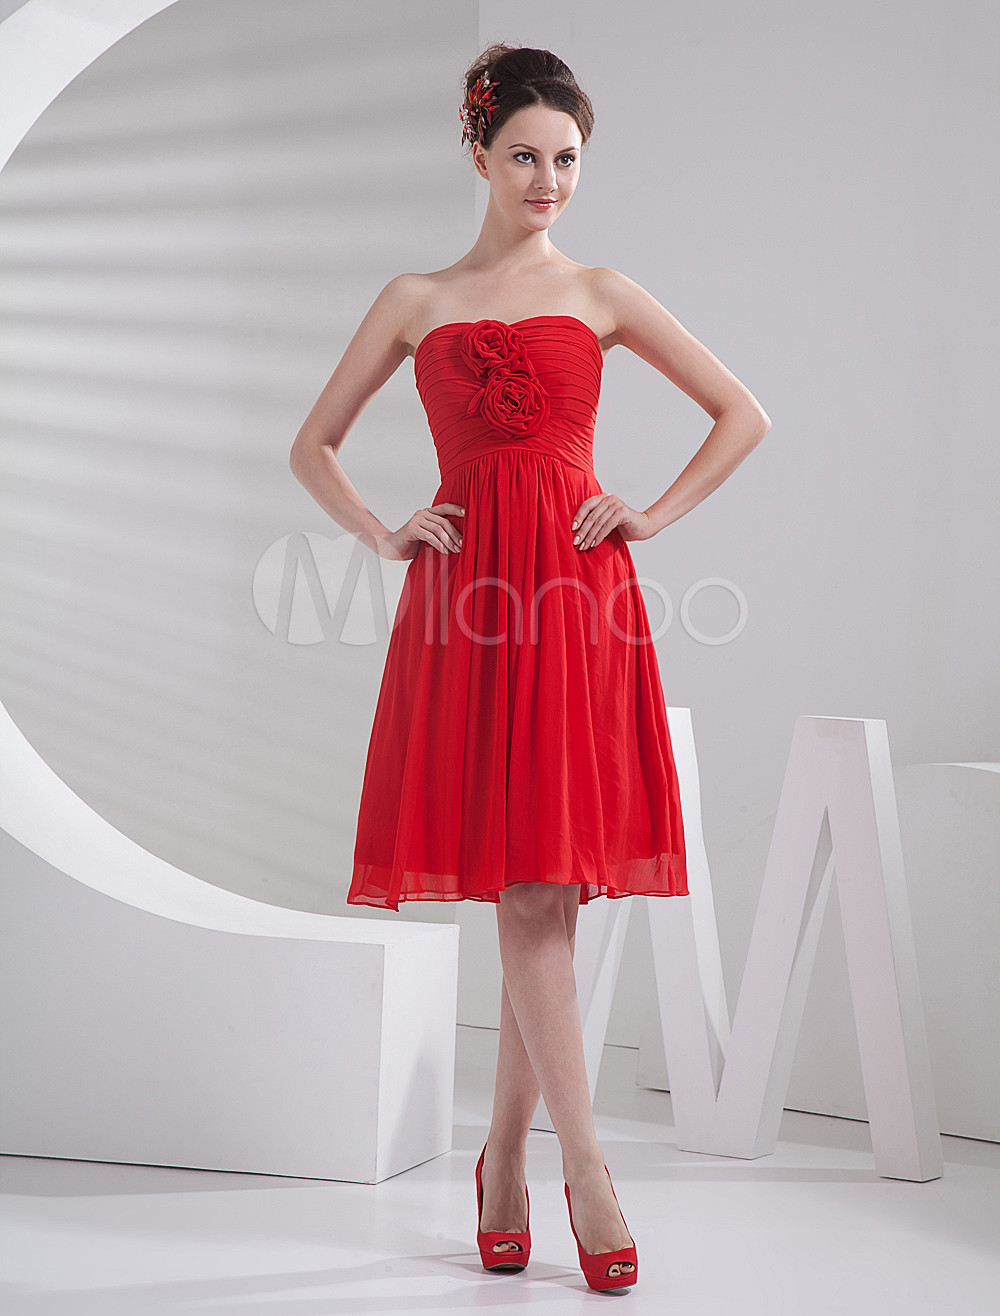 Red Chiffon Knee Length Flower Strapless Bridesmaid Dress